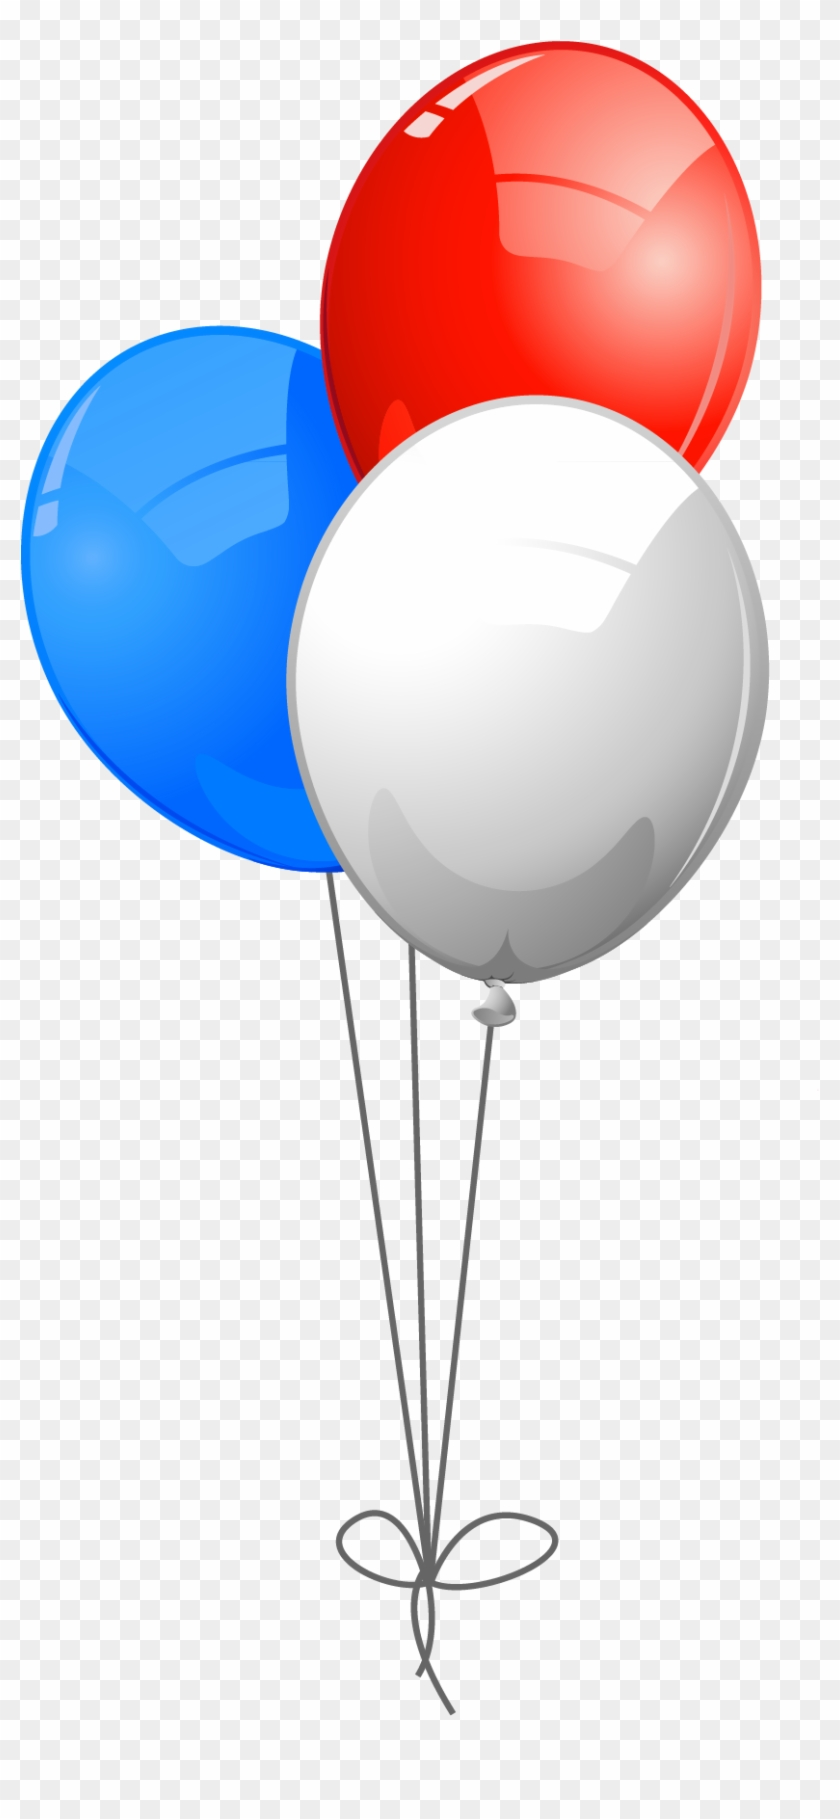 Usa Colors Balloons Png Clipart - Red White Blue Balloons #20425